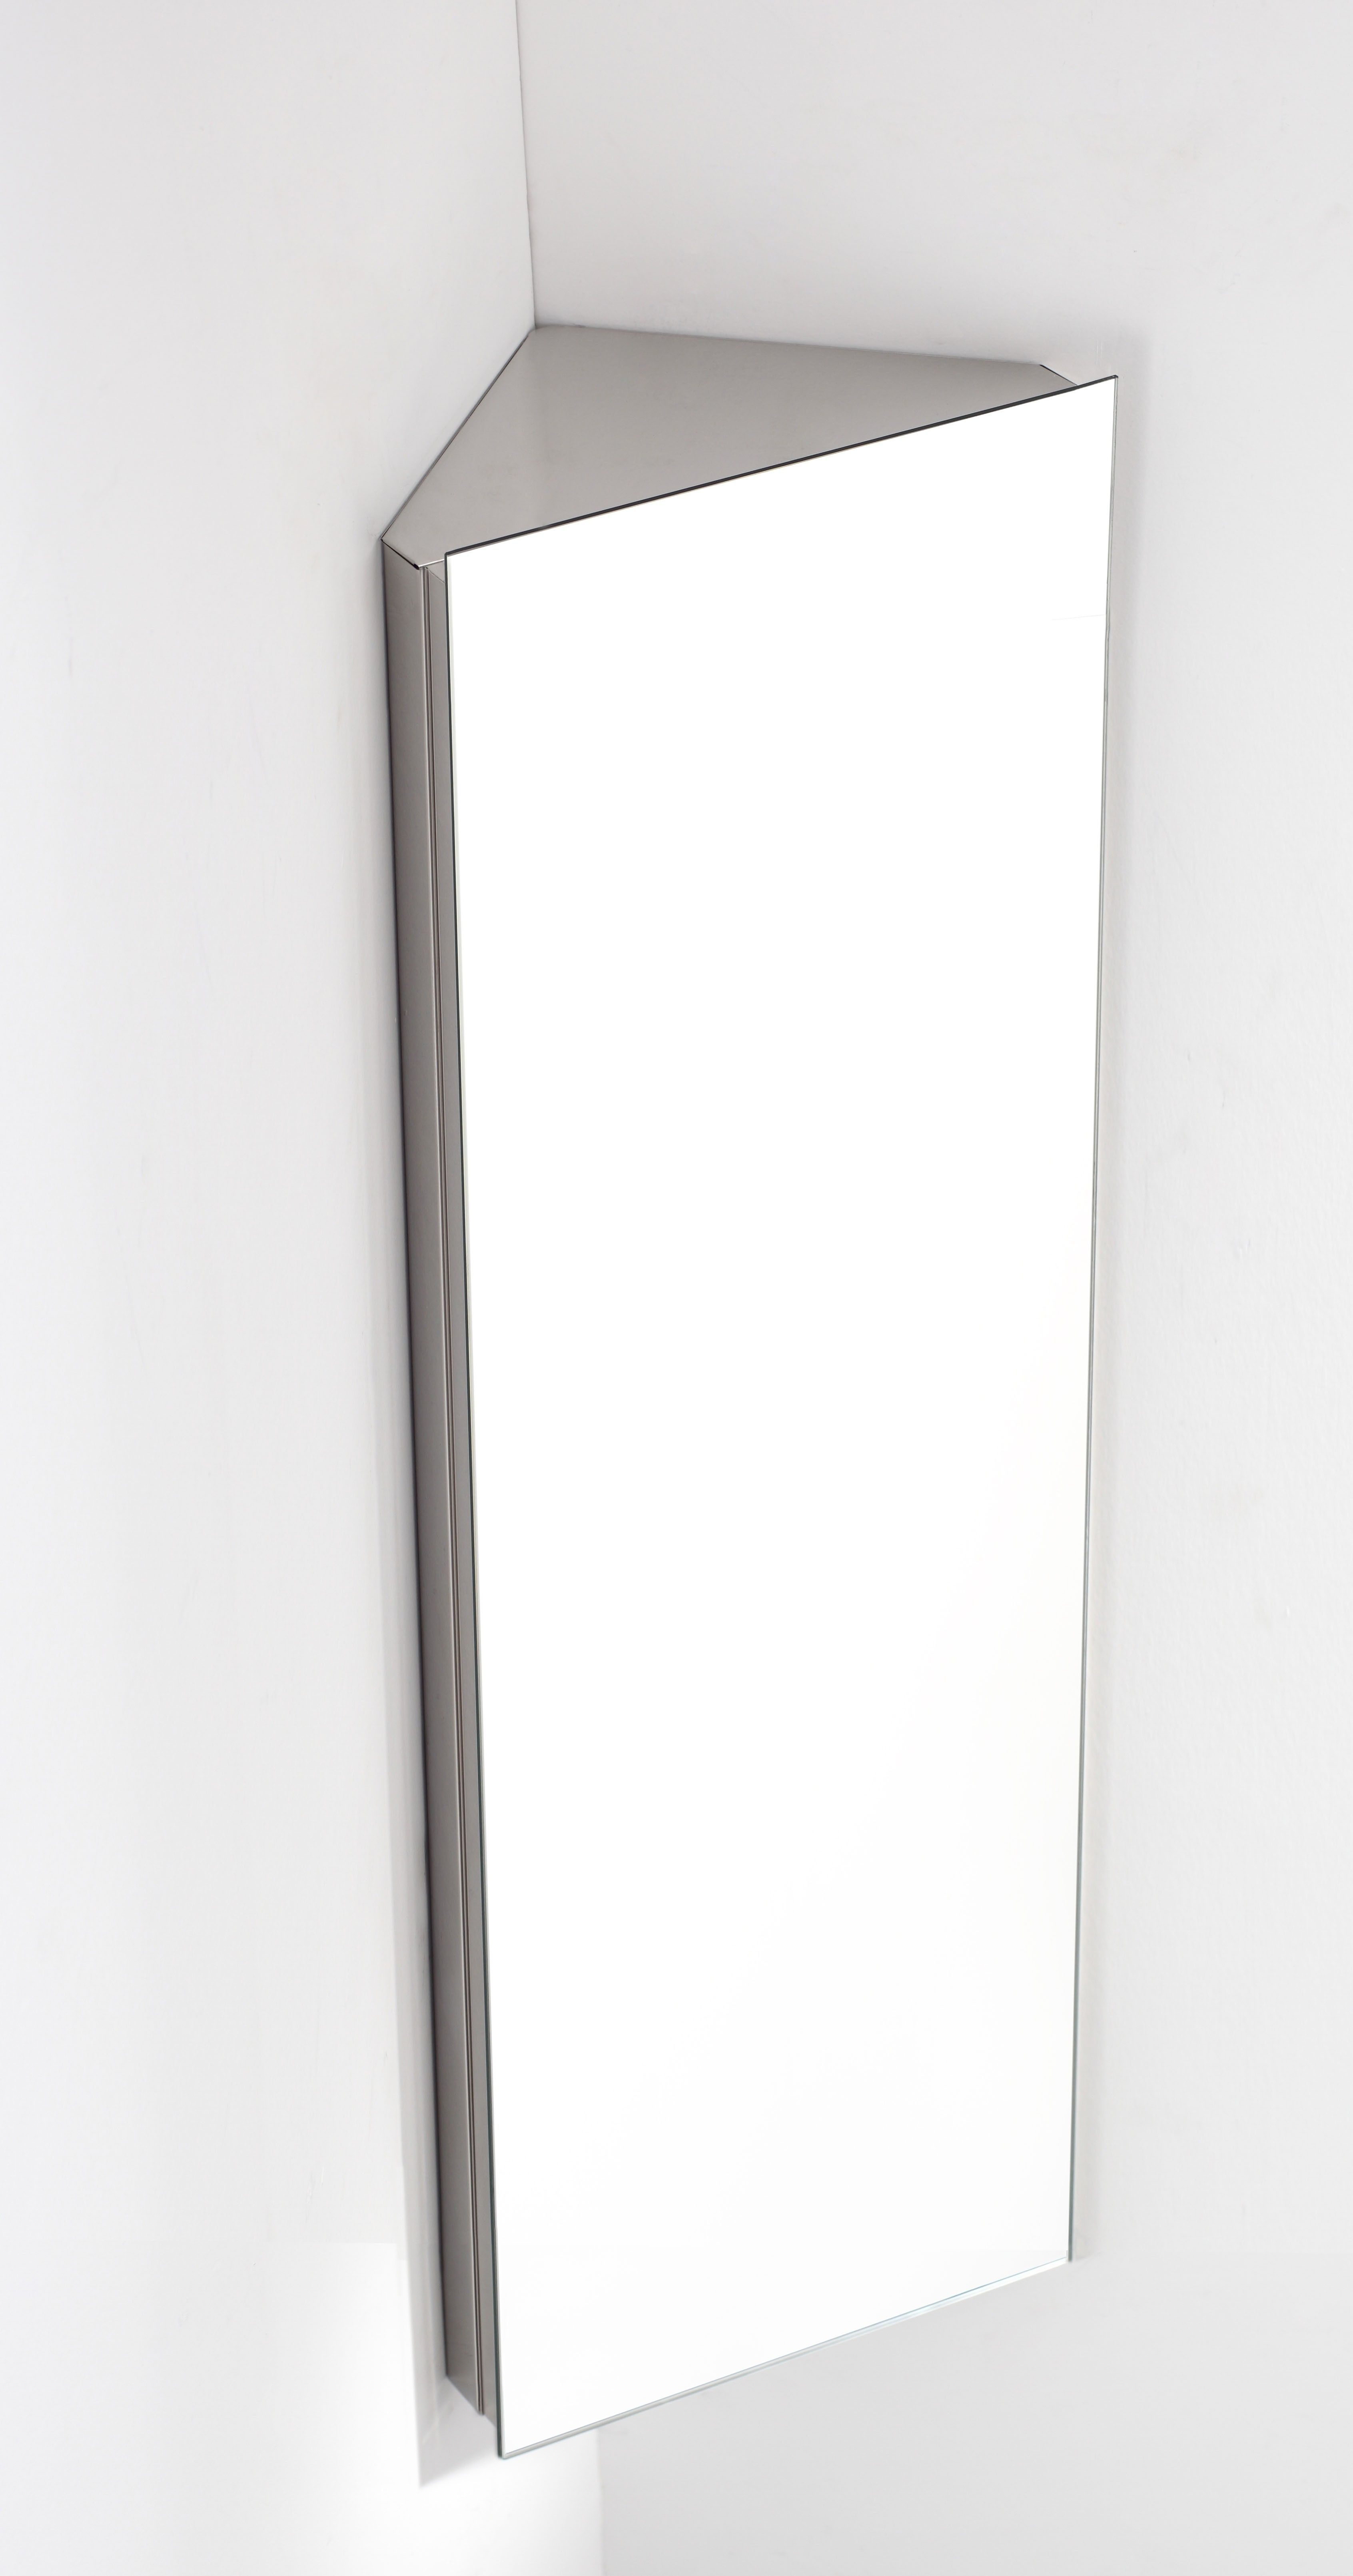 Reims 120cm Tall X 38cm Wide Single Door Corner Mirrored Bathroom